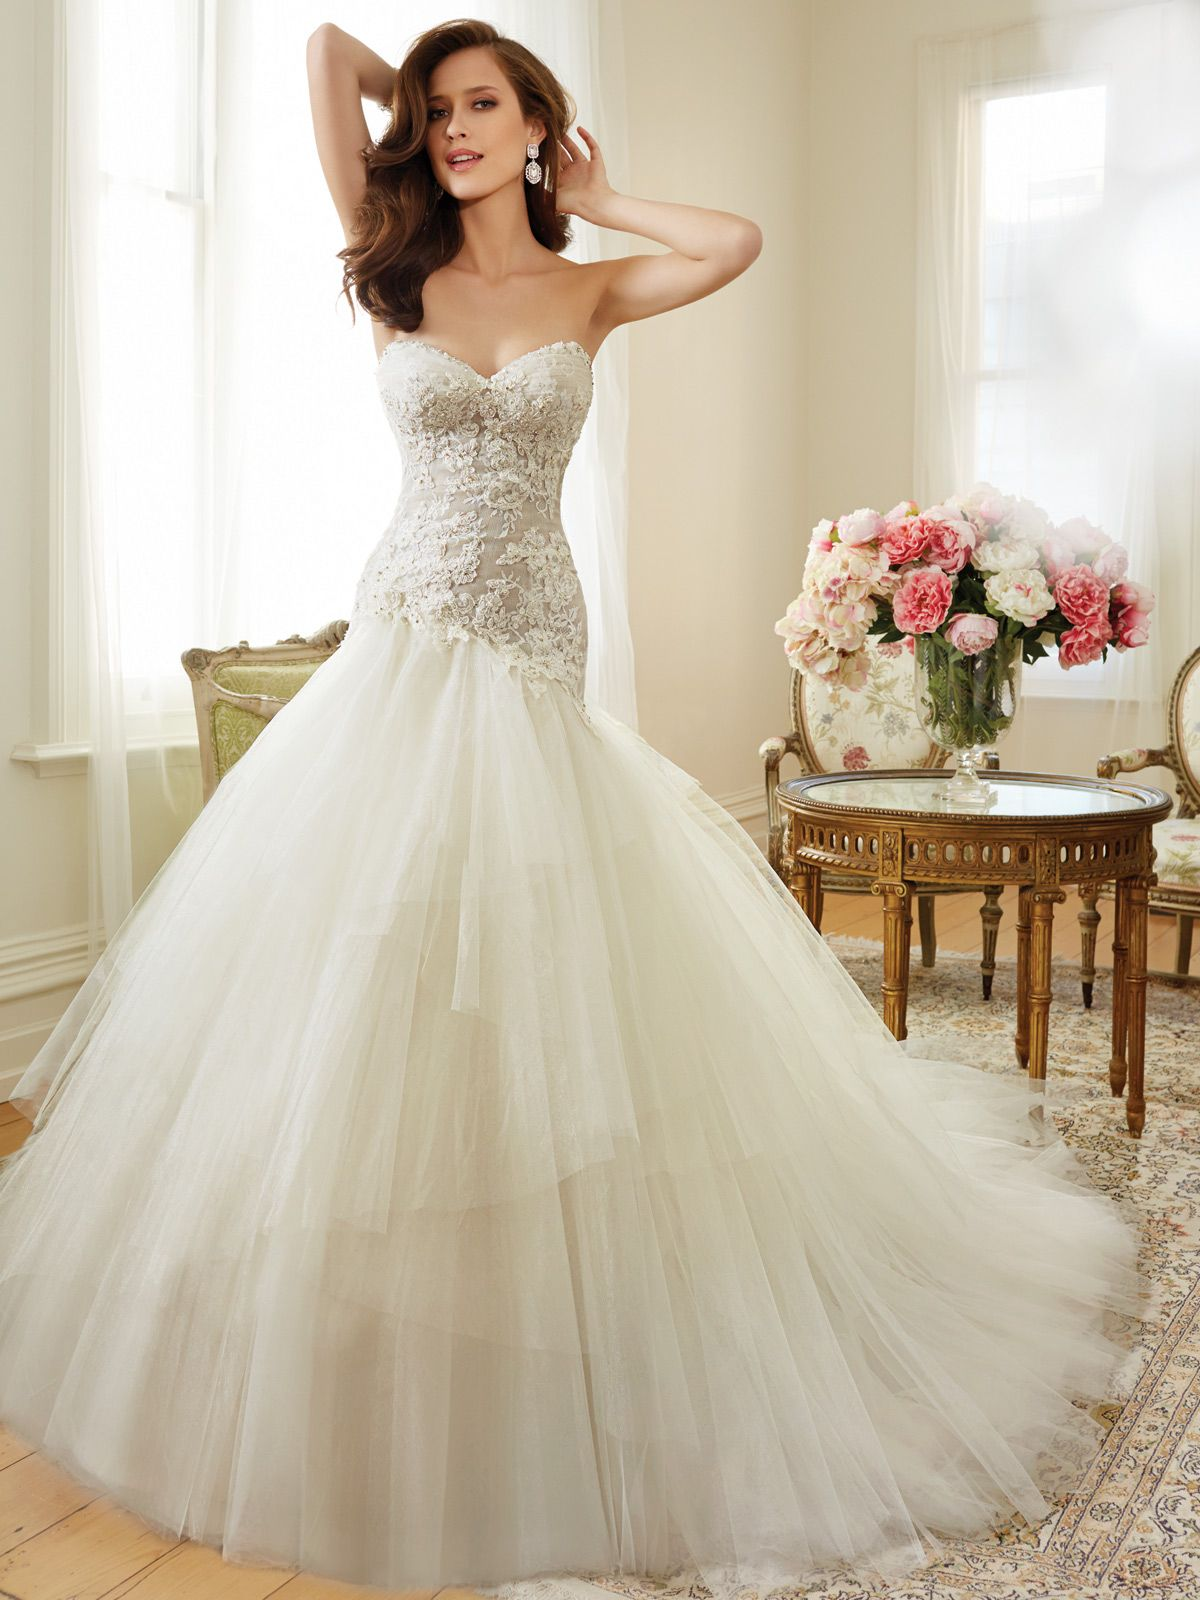 Tulle A Line Wedding Dress with Corset Back | Strapless sweetheart ...